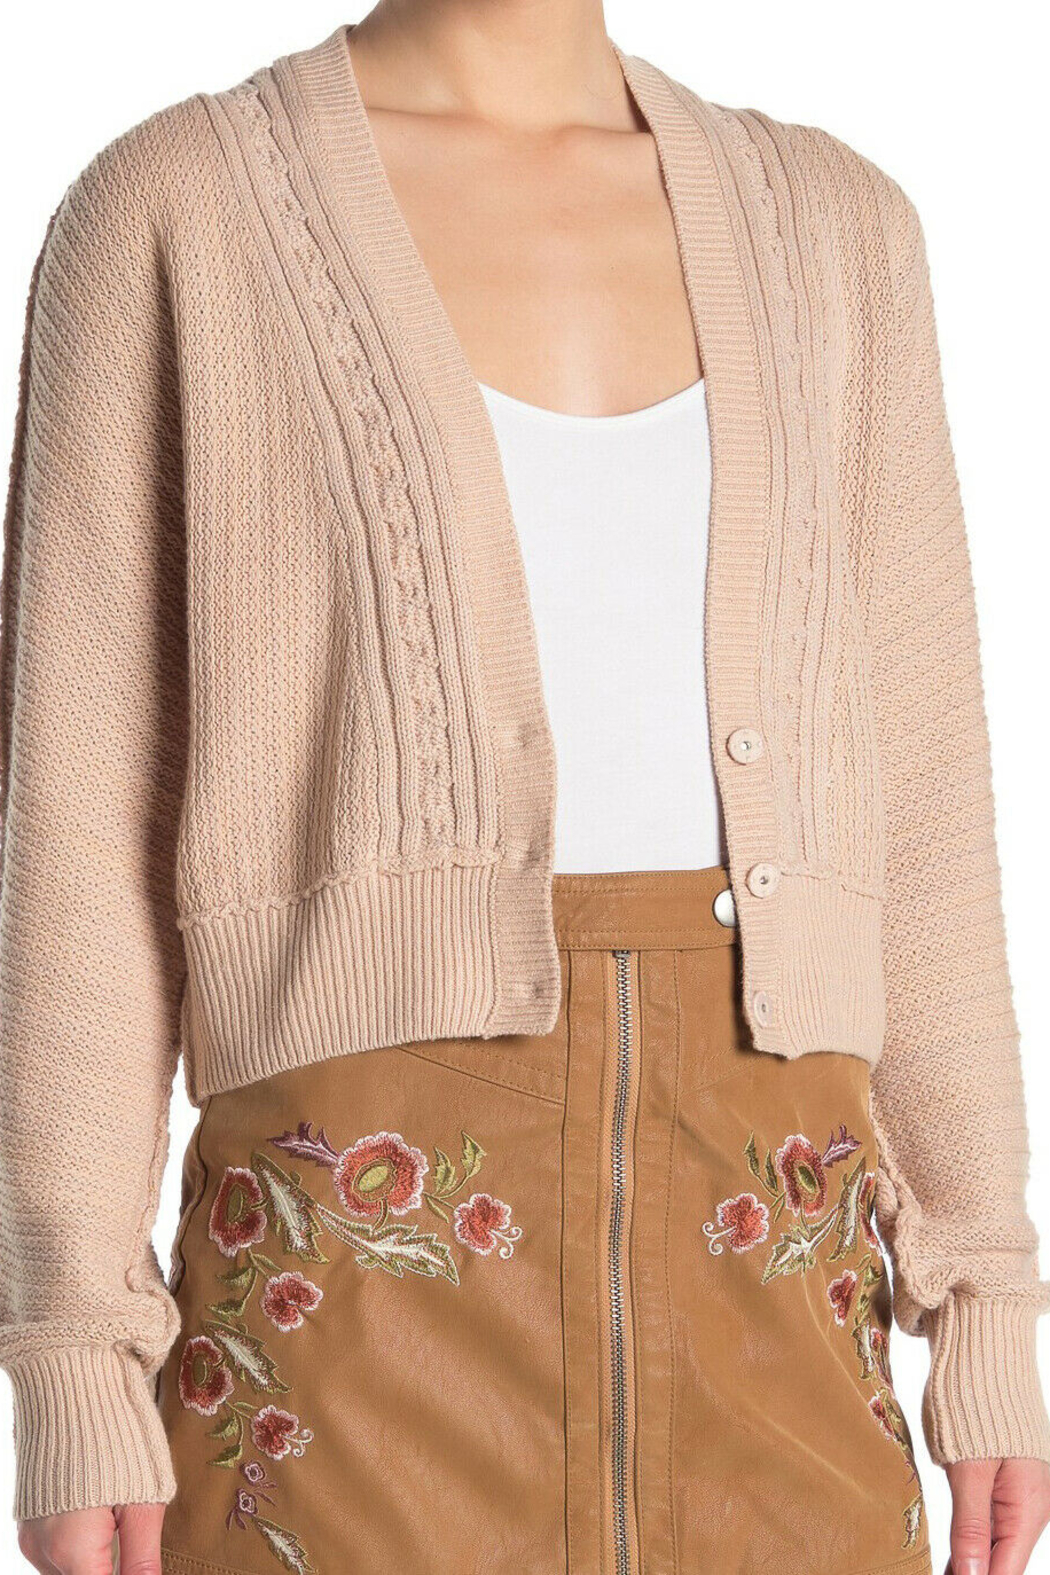 Free People FP Cardigan in Soft Pink - Side Cropped Image